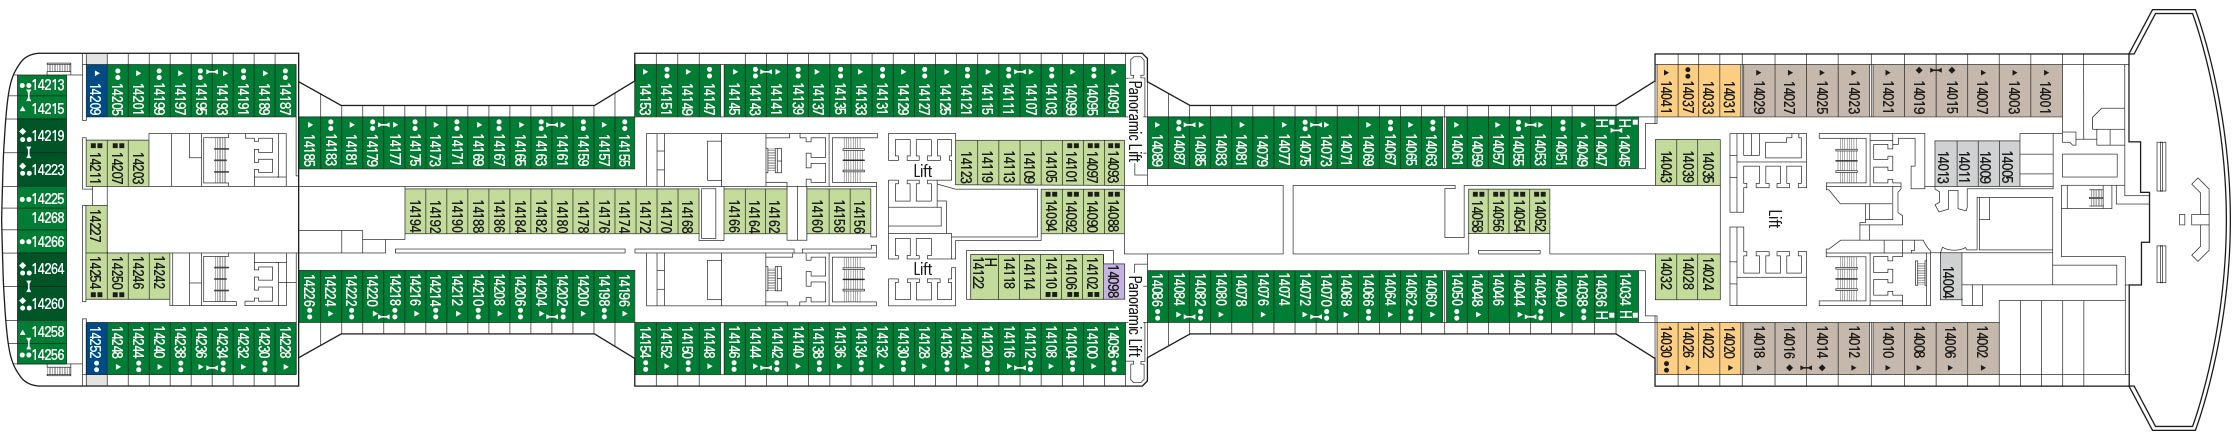 MSC Bellissima Deck Plan: 14 World Class 20s